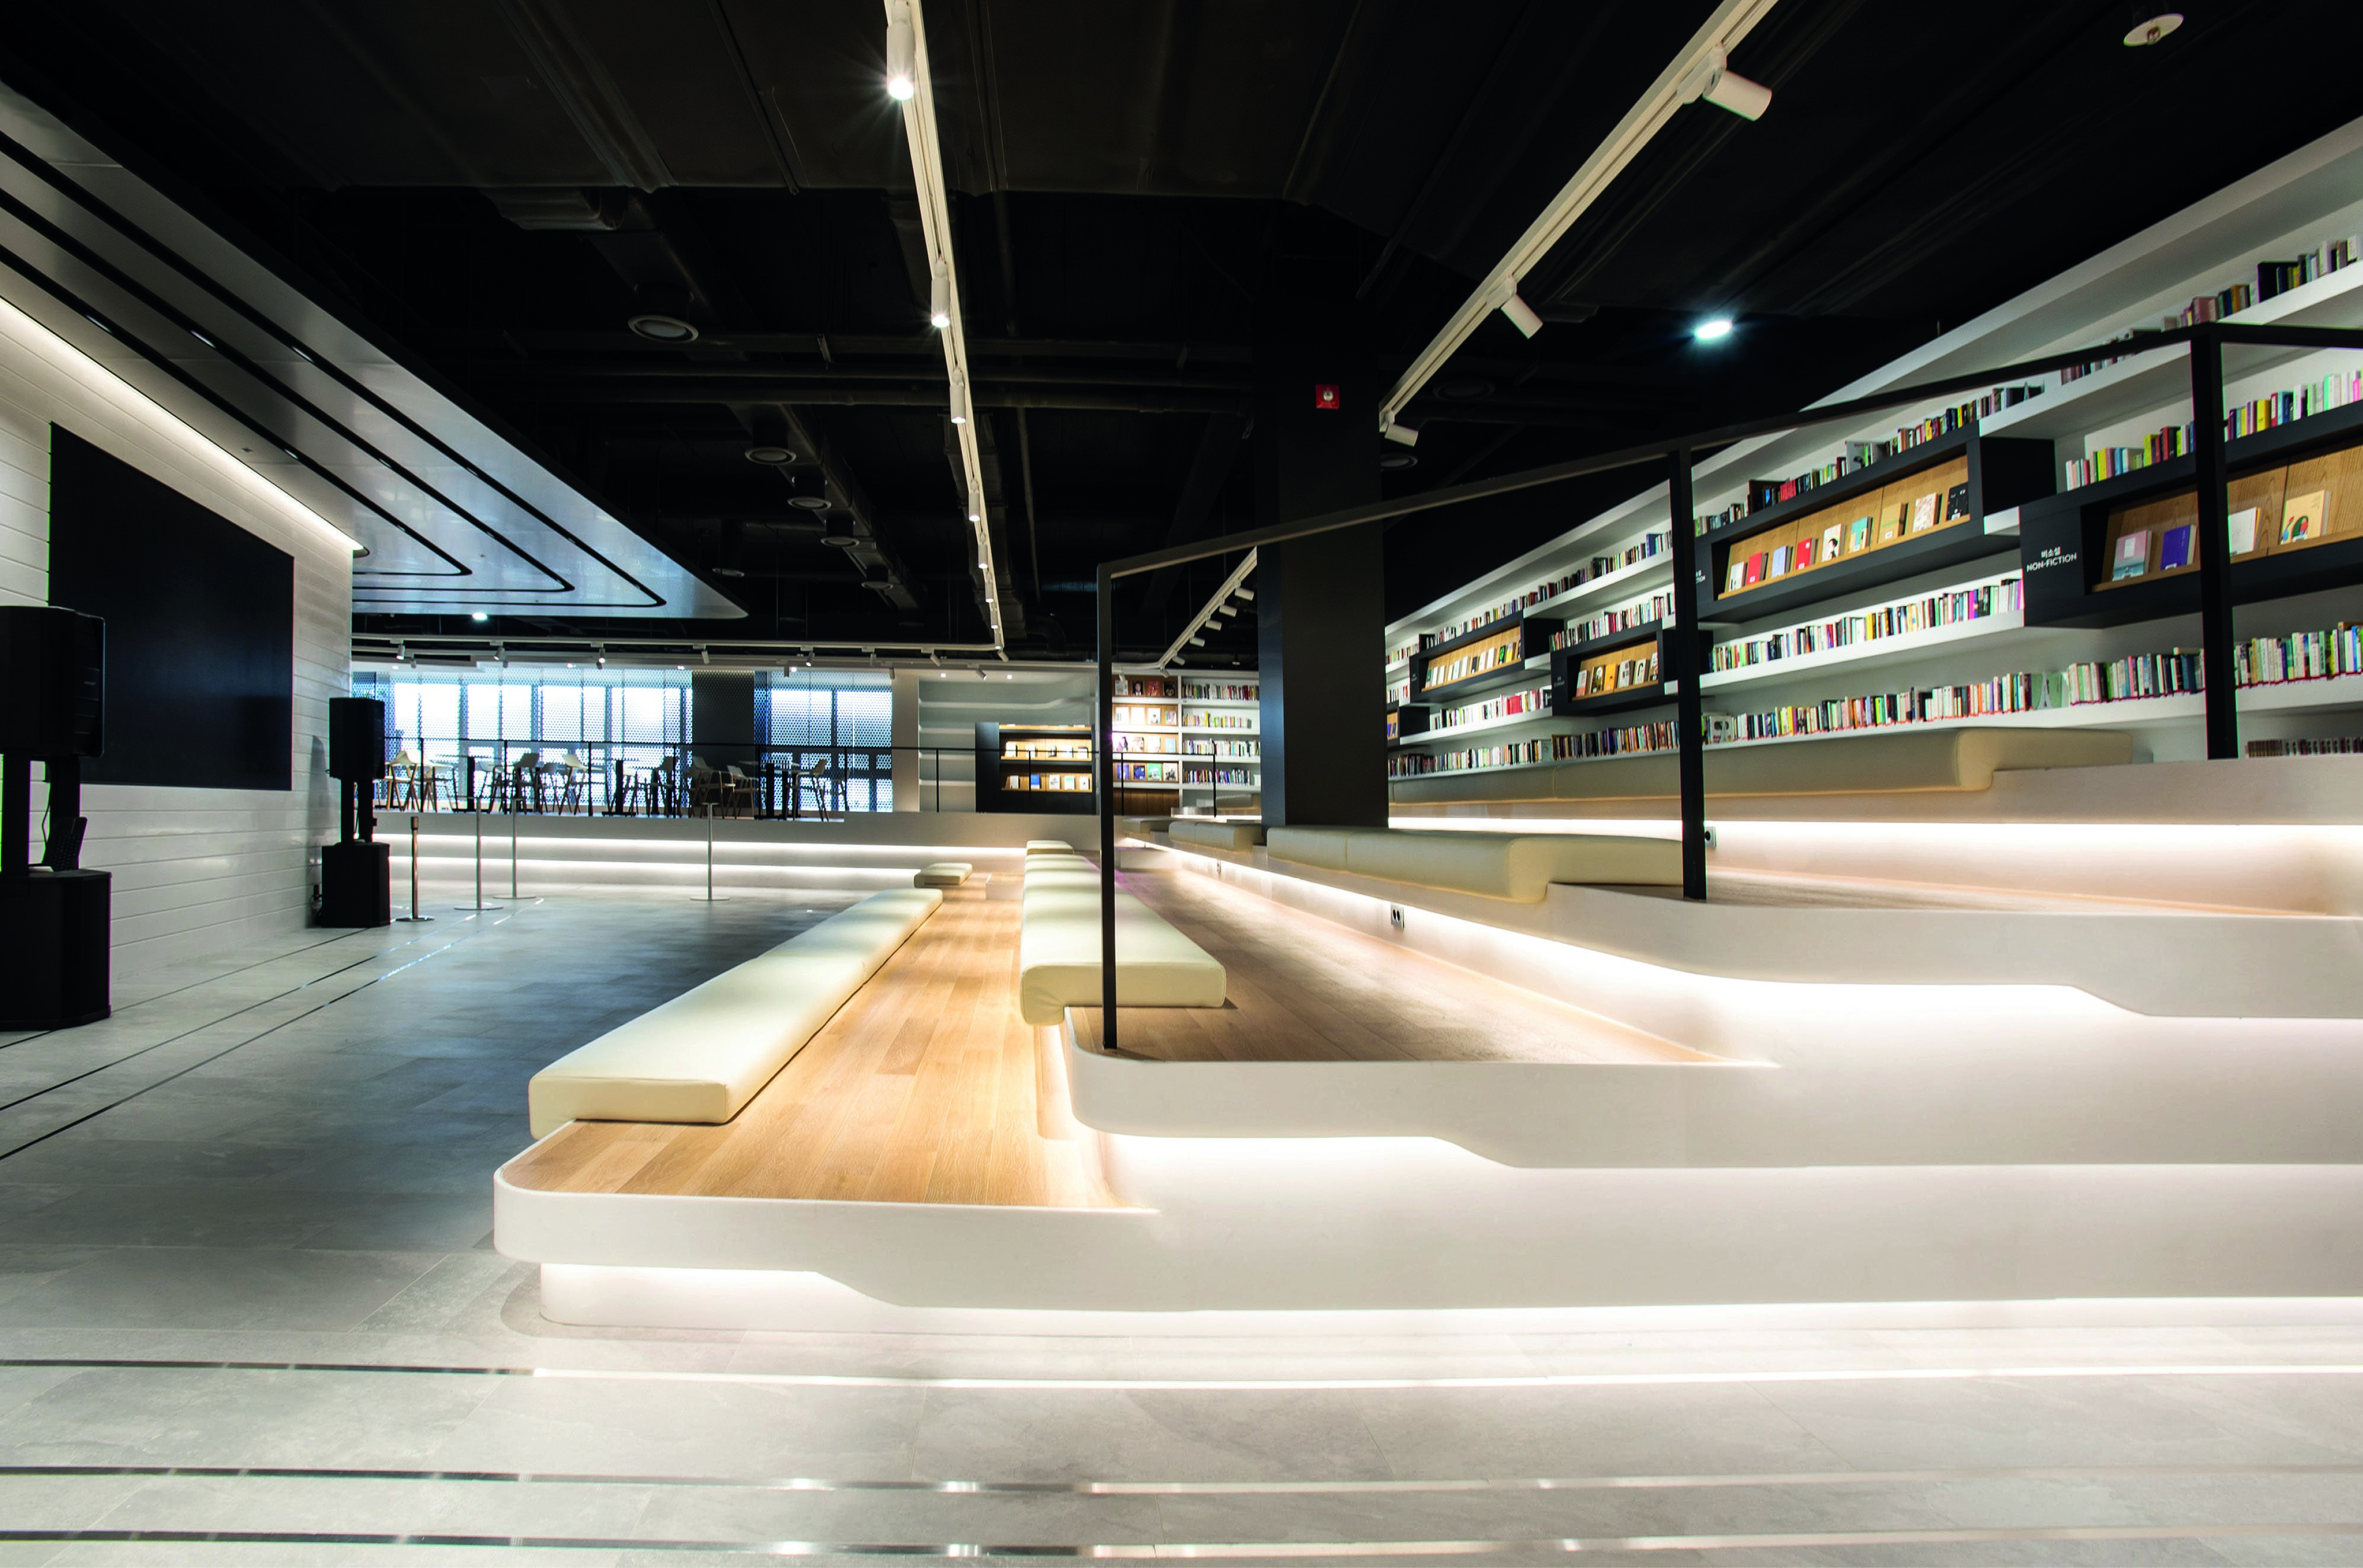 Hyundai L C Usa Retail Design Hanex Solid Surfaces By Hyundai L C Usa Can Be Used In Numerous Interio Retail Design Commercial Interior Design Flooring Sale